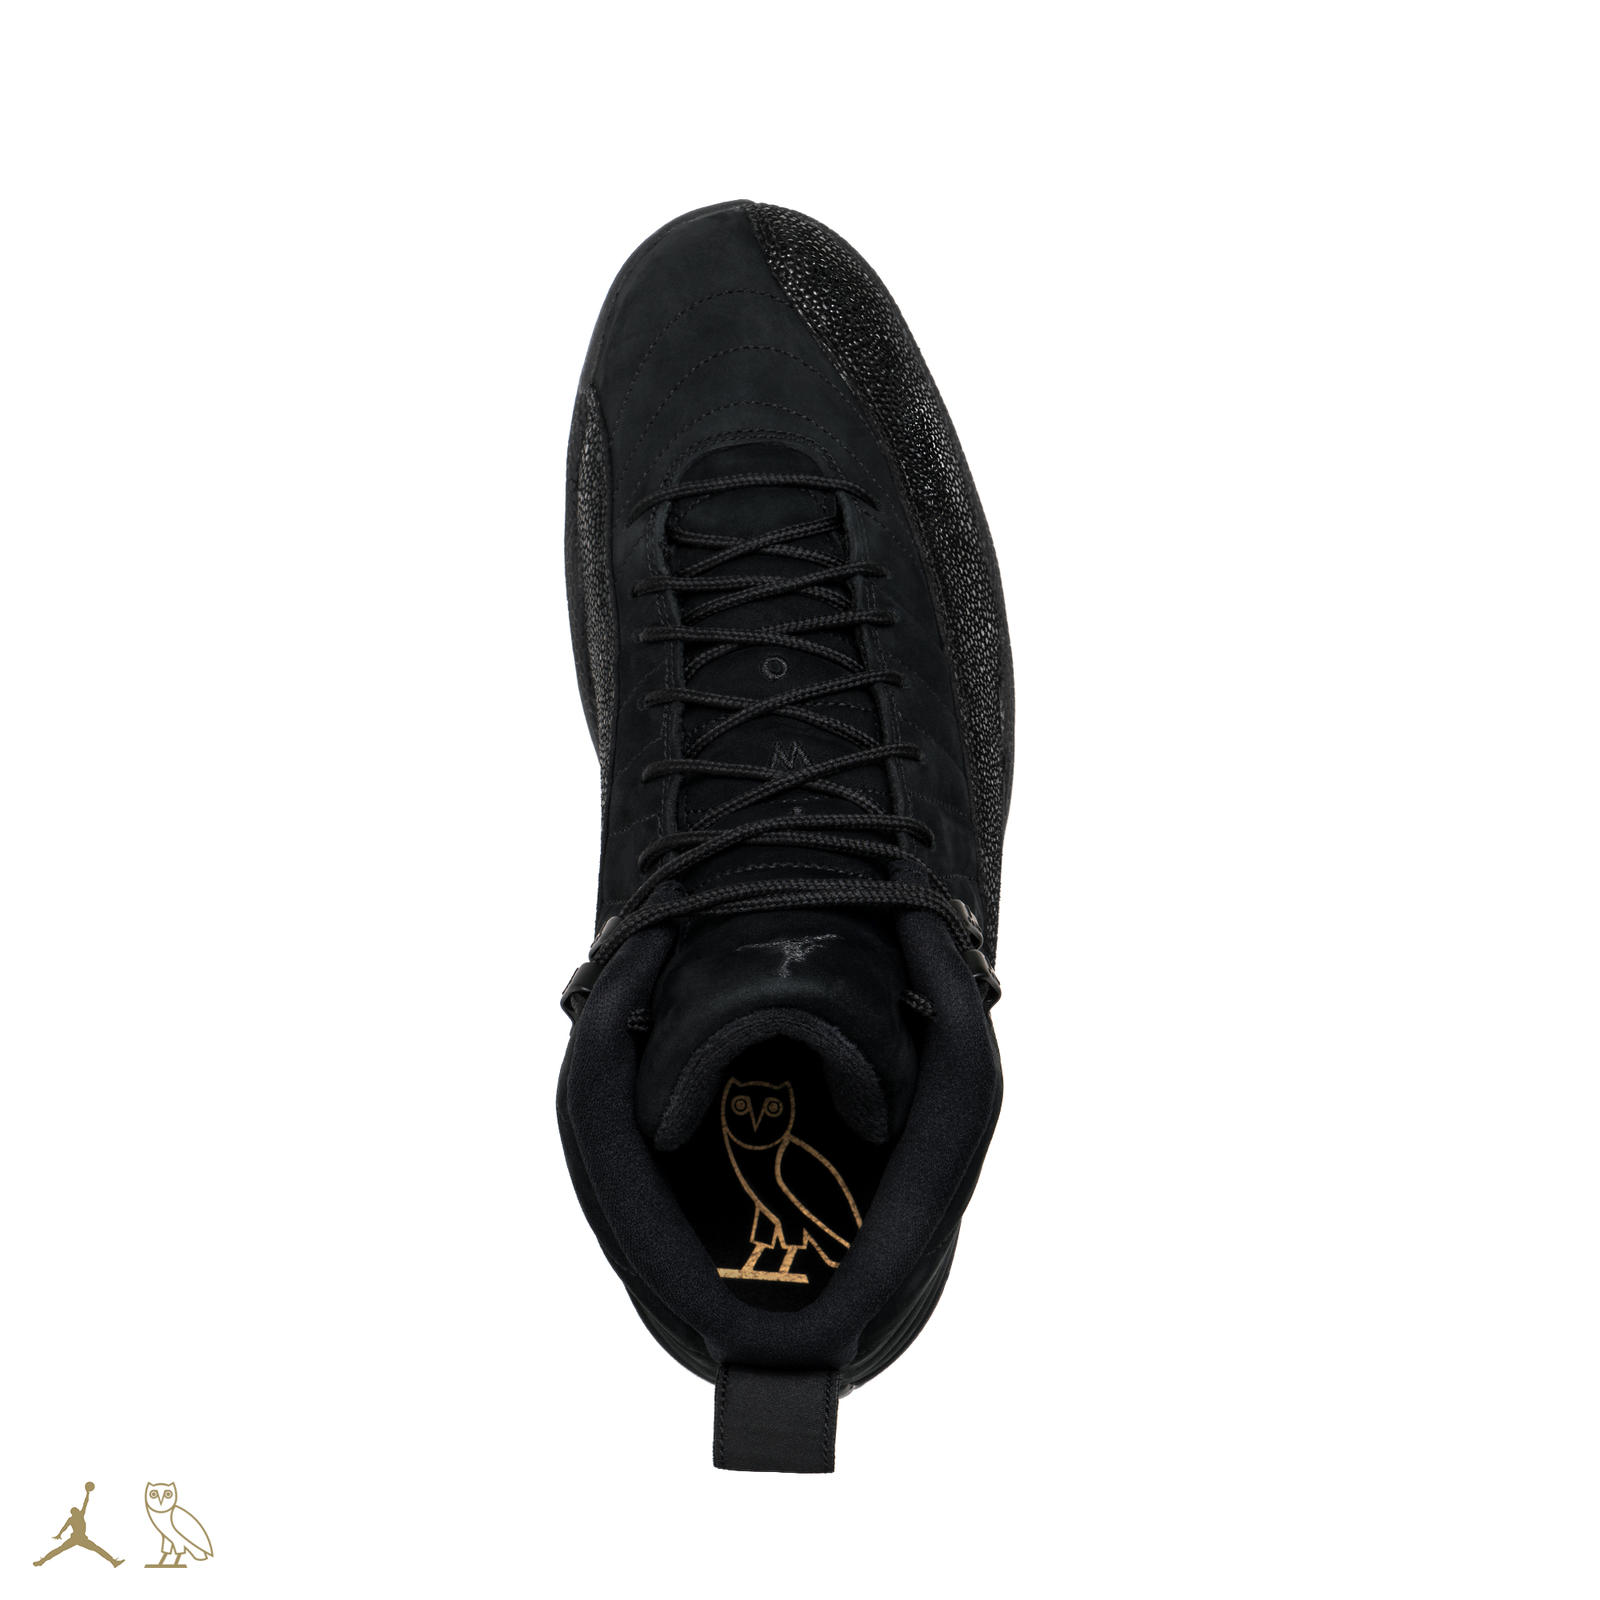 Black ovo jordan 12s 03 square 1600